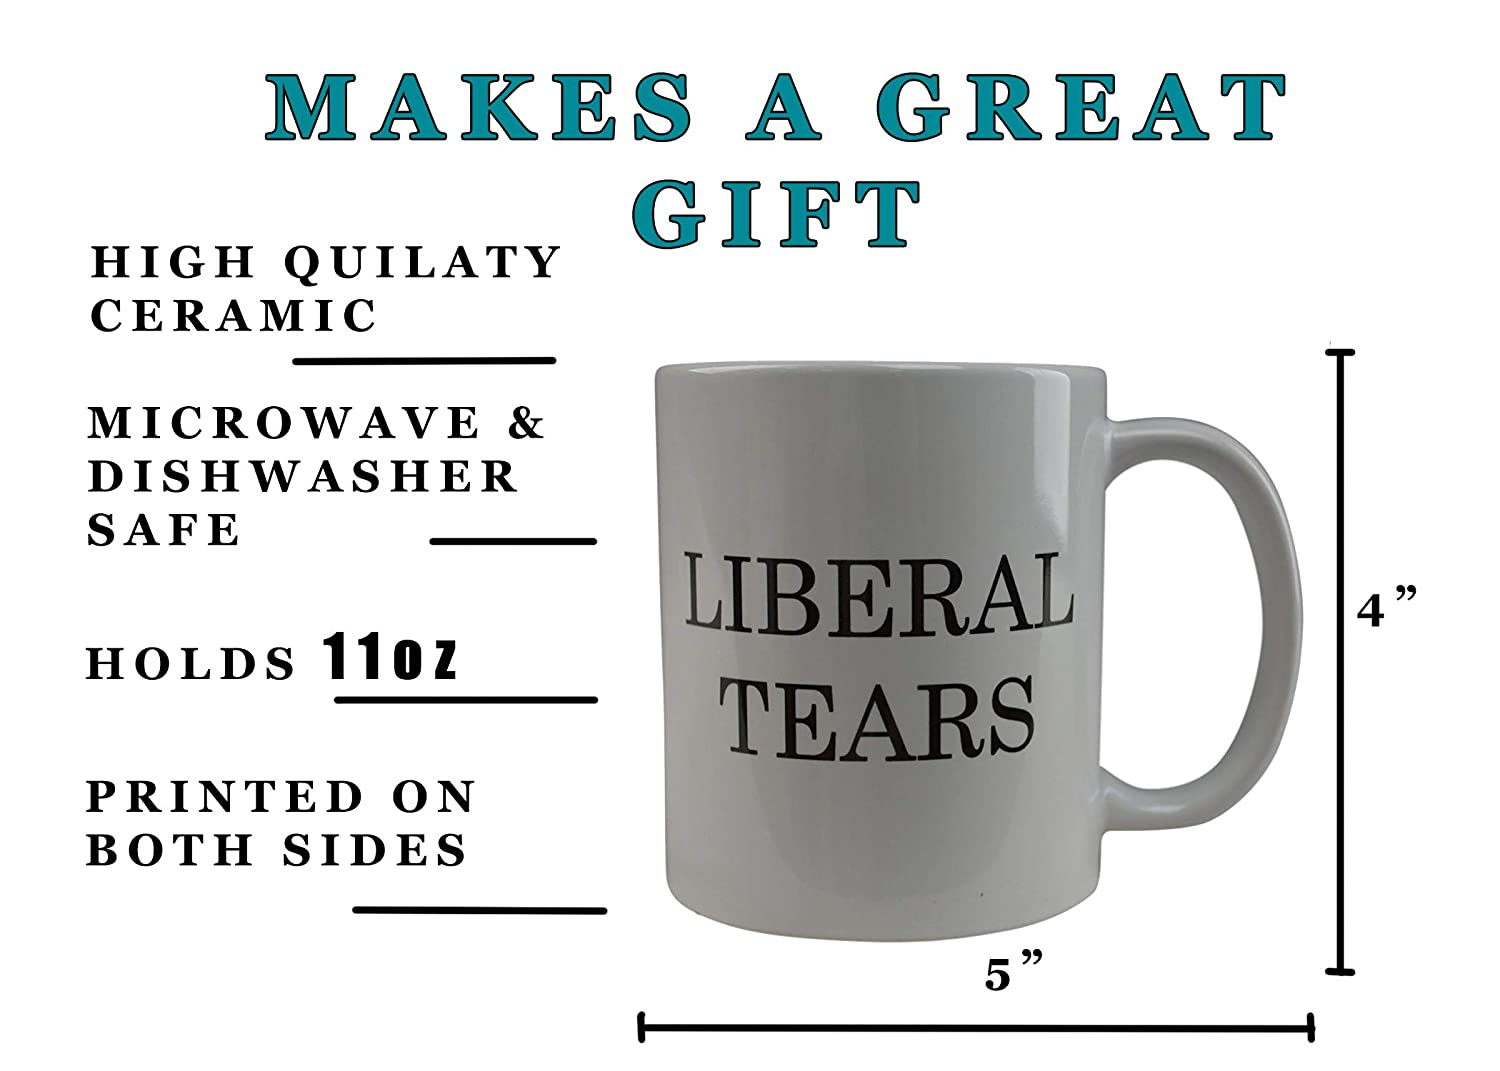 Rogue River Funny Coffee Mug Liberal Tears Political Novelty Cup Great Gift Idea for Republicans or Conservatives